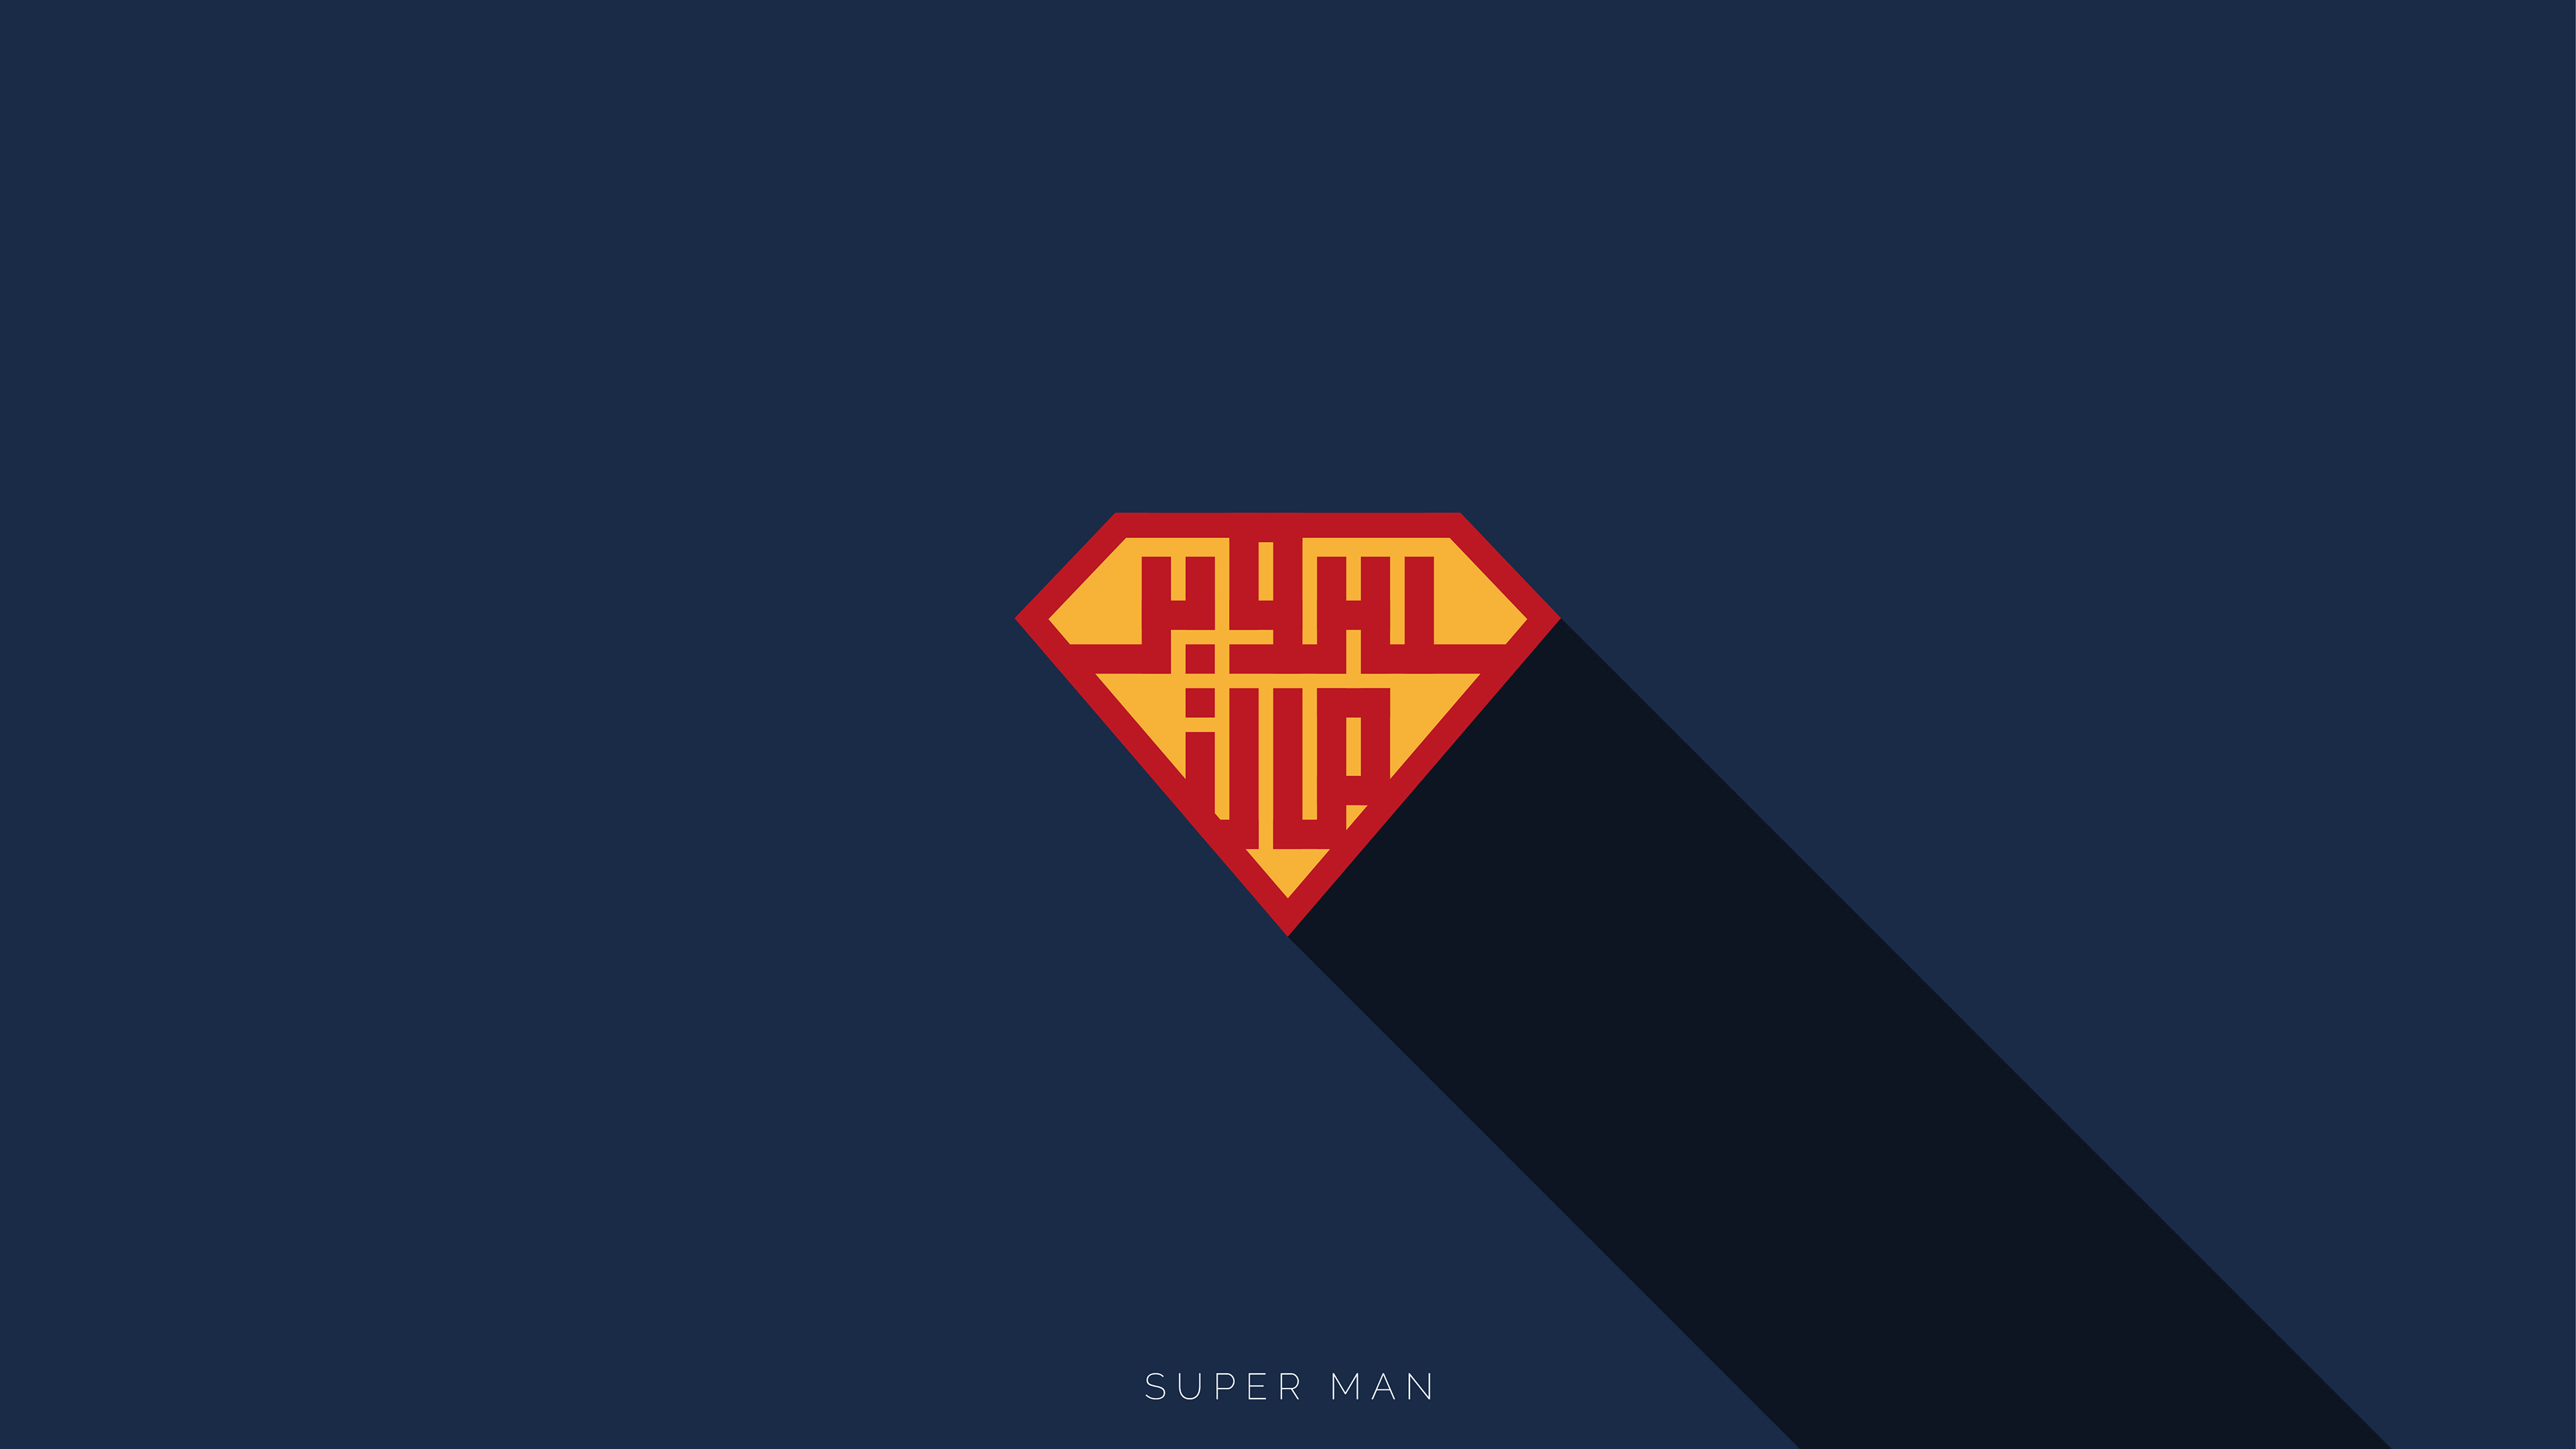 superman calligraphy 1565052907 - Superman Calligraphy - superman wallpapers, superheroes wallpapers, minimalist wallpapers, minimalism wallpapers, hd-wallpapers, digital art wallpapers, behance wallpapers, artwork wallpapers, artist wallpapers, 4k-wallpapers